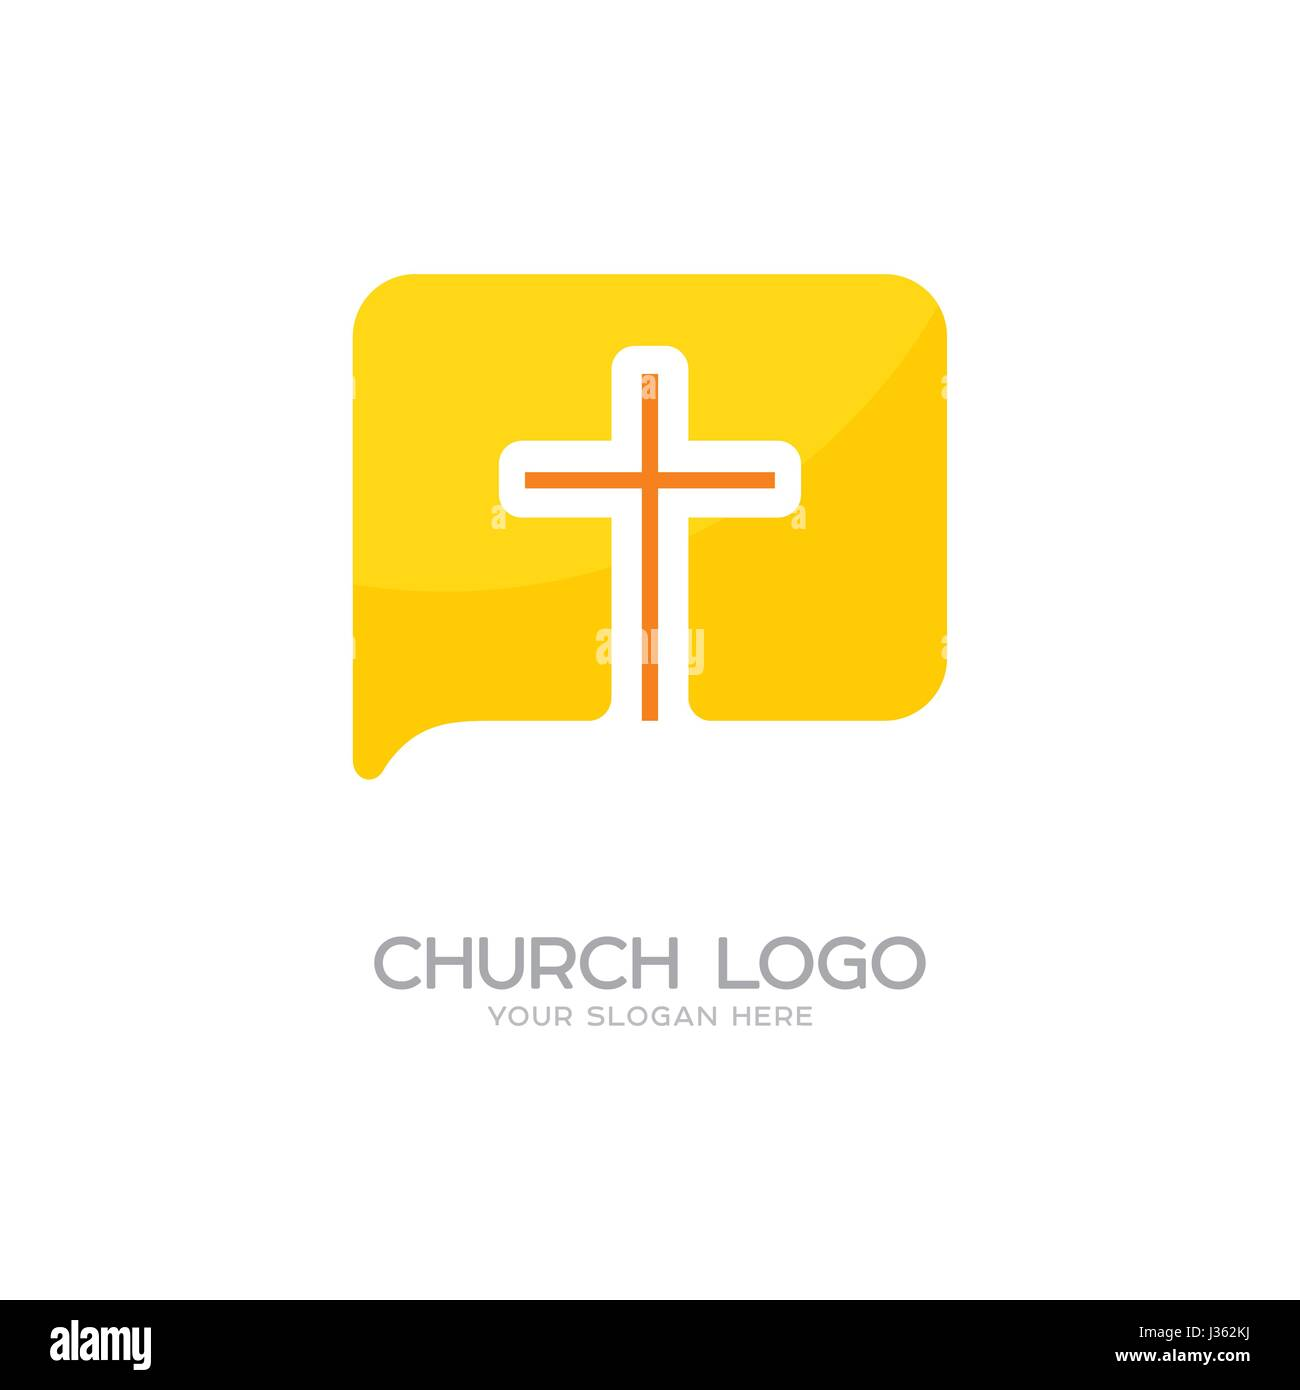 Church logo christian symbols the cross of jesus christ and the church logo christian symbols the cross of jesus christ and the symbol of communication buycottarizona Image collections